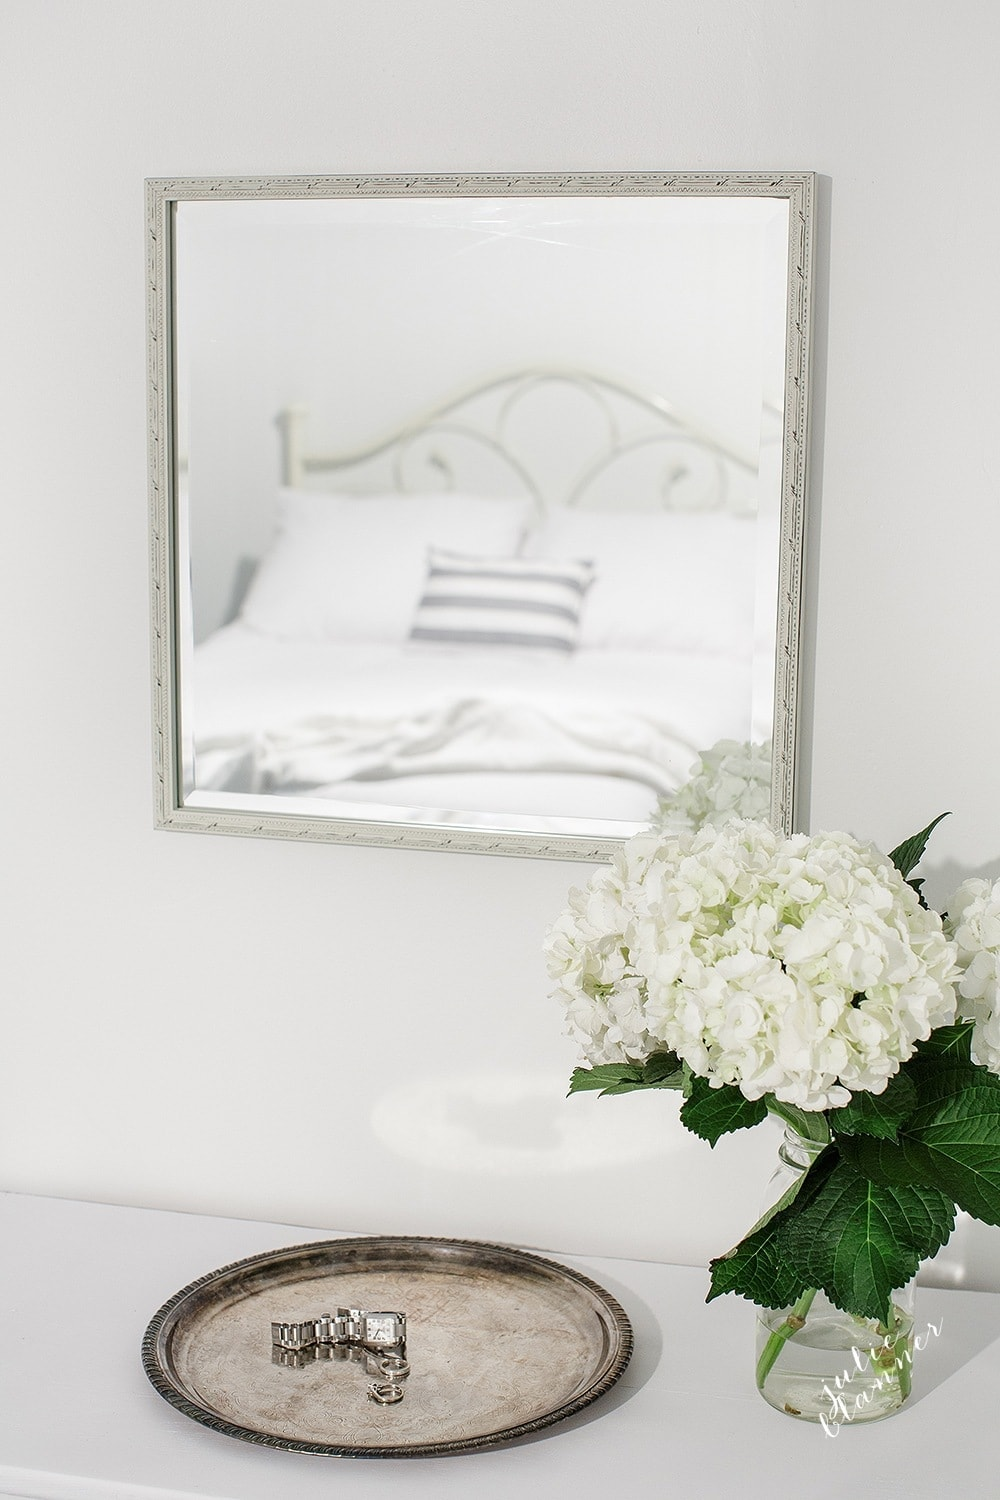 What to include in a guest bedroom to make guests feel at home